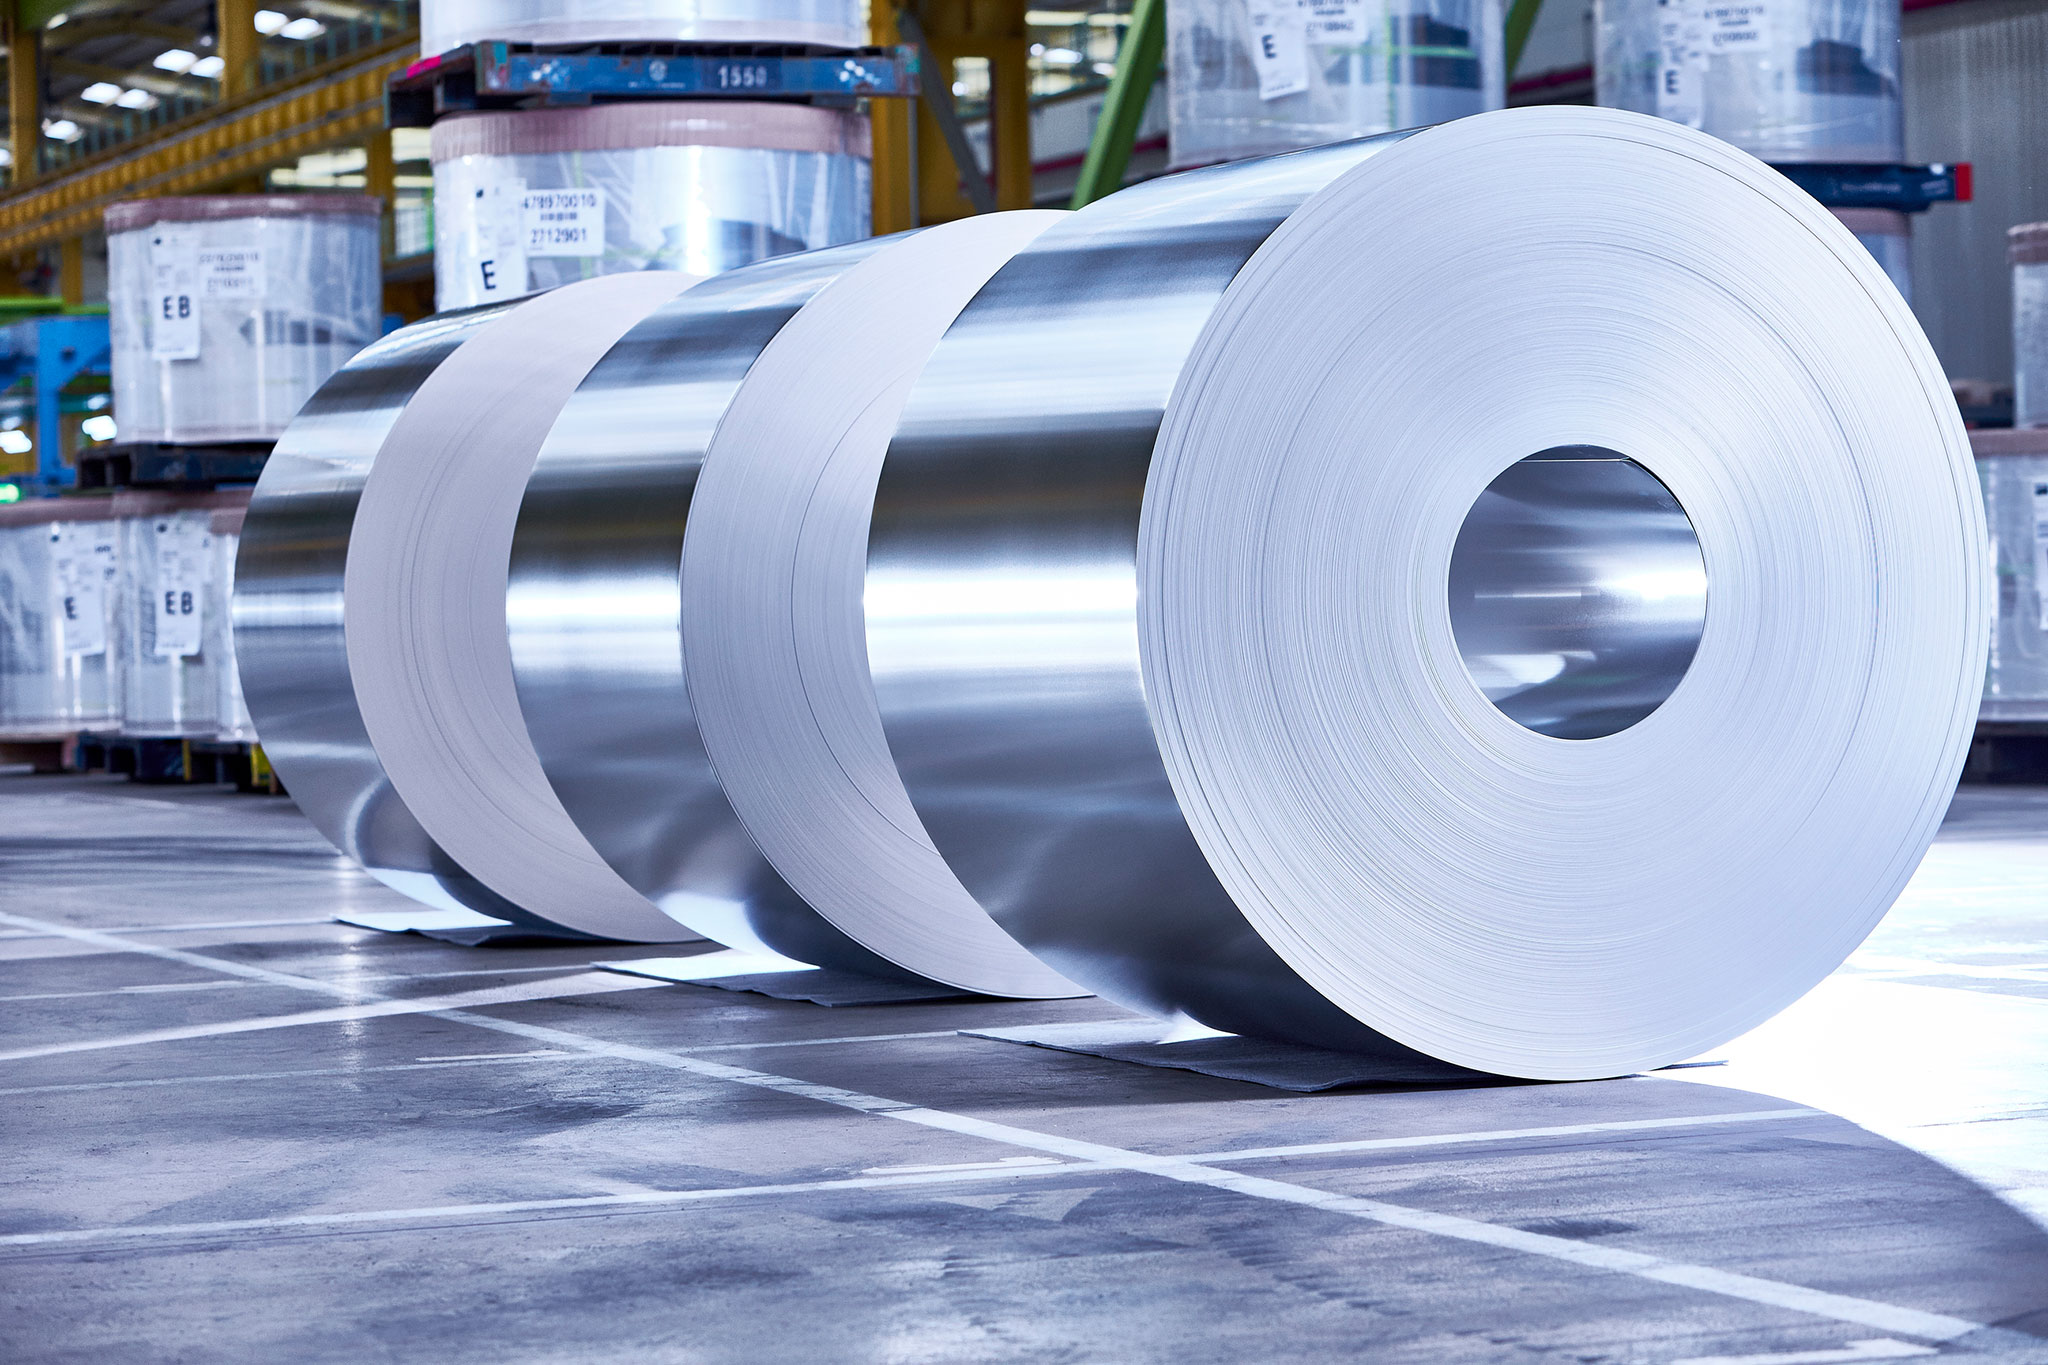 In Andernach, Rhineland-Palatinate, thyssenkrupp produces around 1.5 million tons of packaging steel each year.